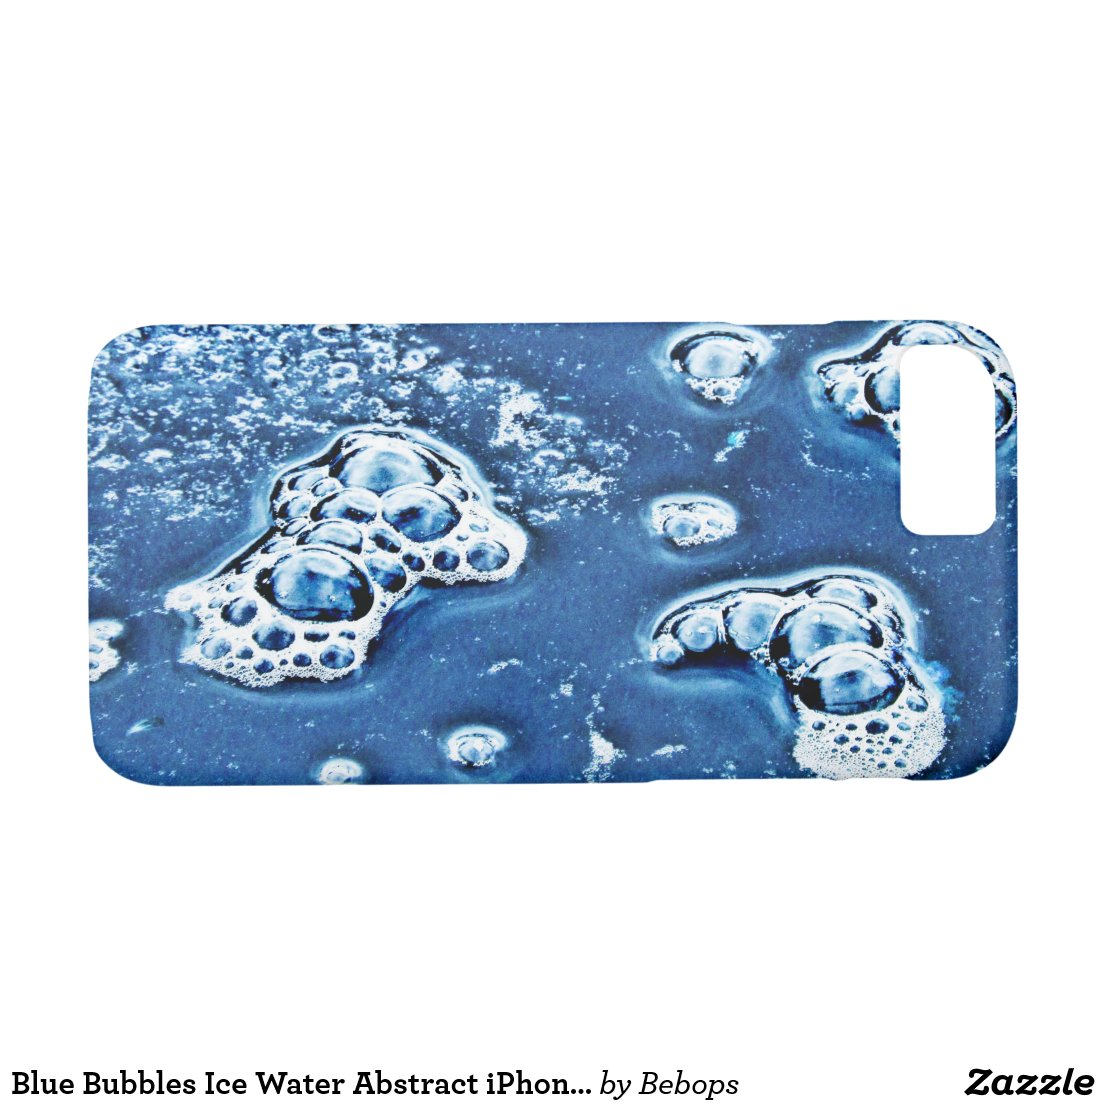 Blue Bubbles Ice and Water Abstract iPhone 7 Case